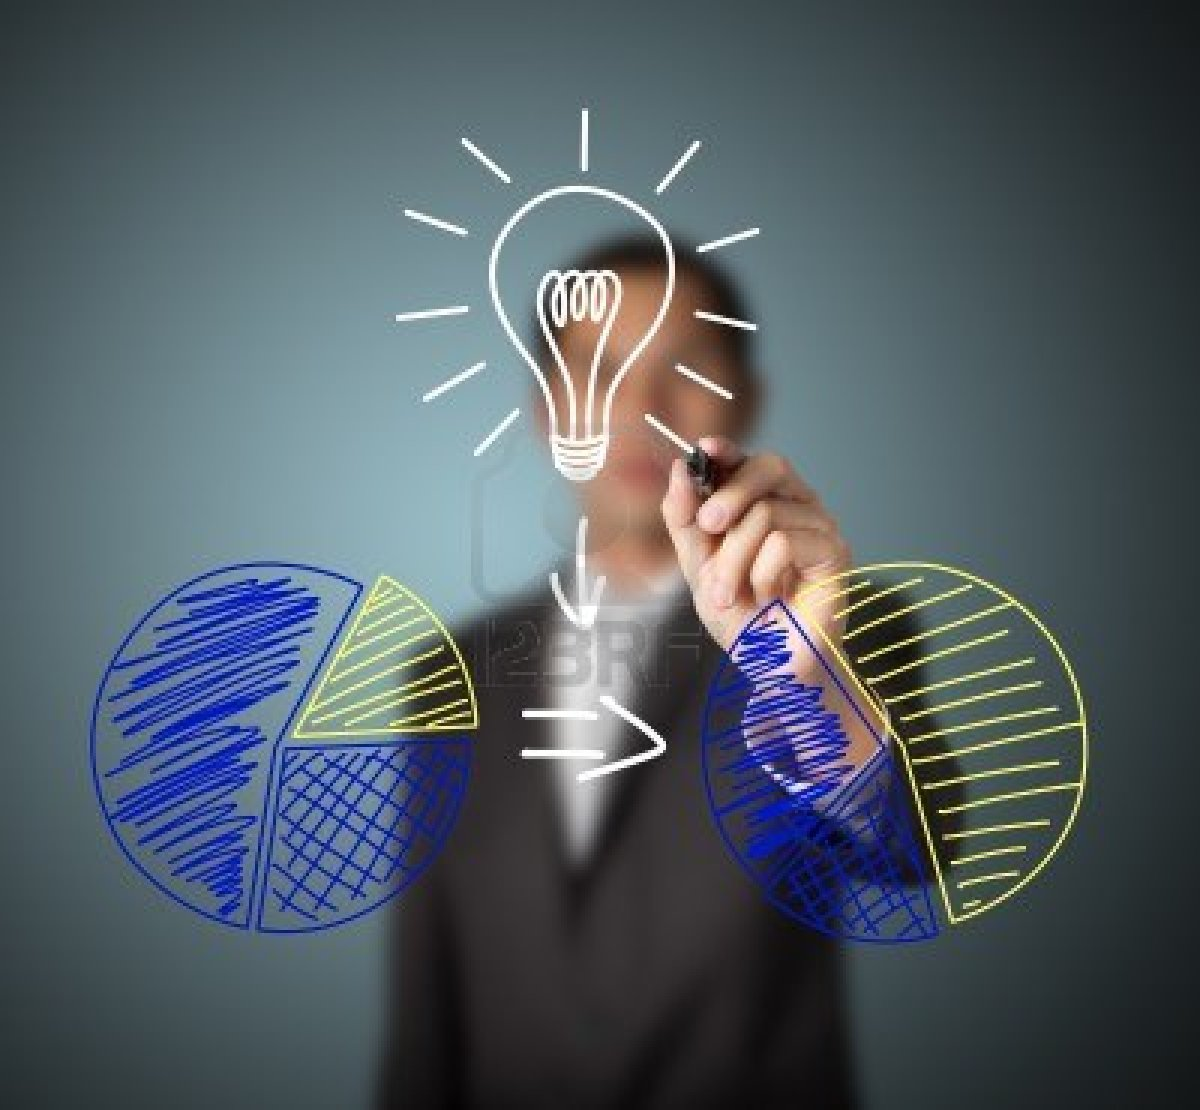 A vouloir innover innove t on vraiment mouvement colibris for Idee innovation entreprise